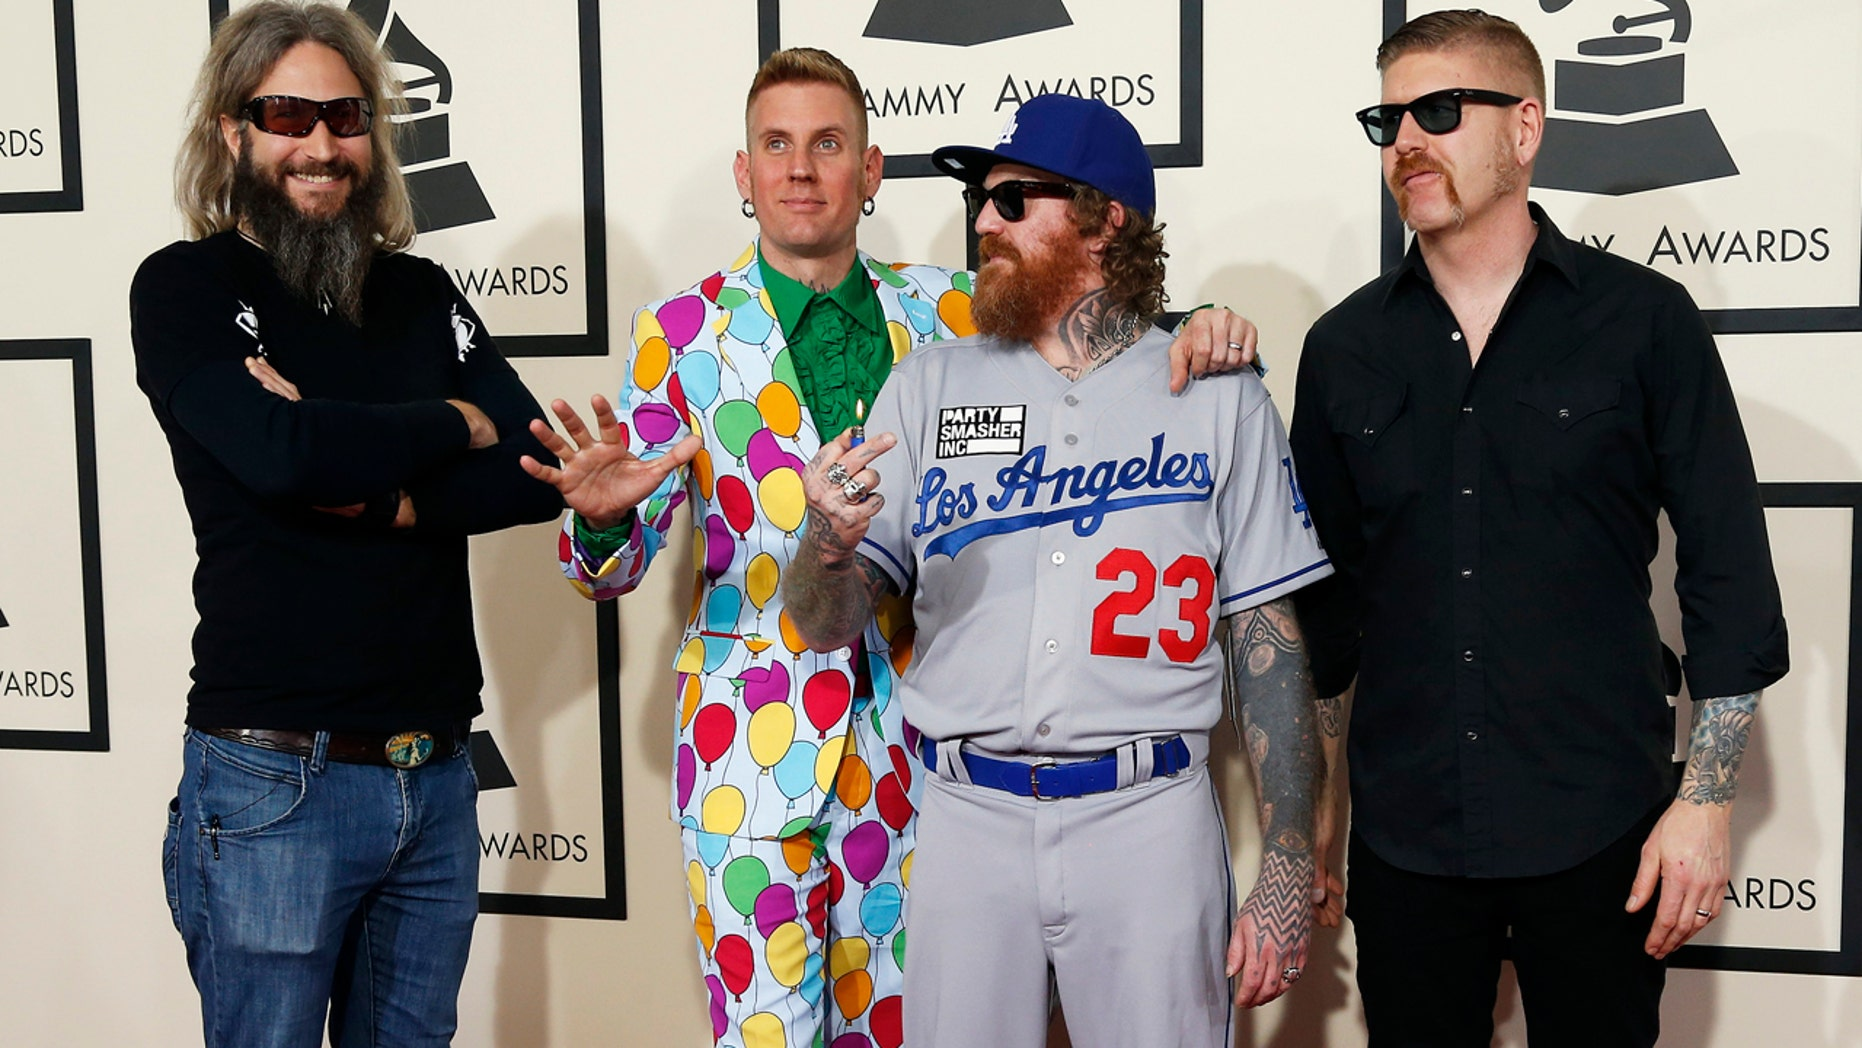 The musical group Mastodon arrives at the 57th annual Grammy Awards in Los Angeles, California February 8, 2015.  REUTERS/Mario Anzuoni  (UNITED STATES - TAGS: ENTERTAINMENT) (GRAMMYS-ARRIVALS) - RTR4OQ8S